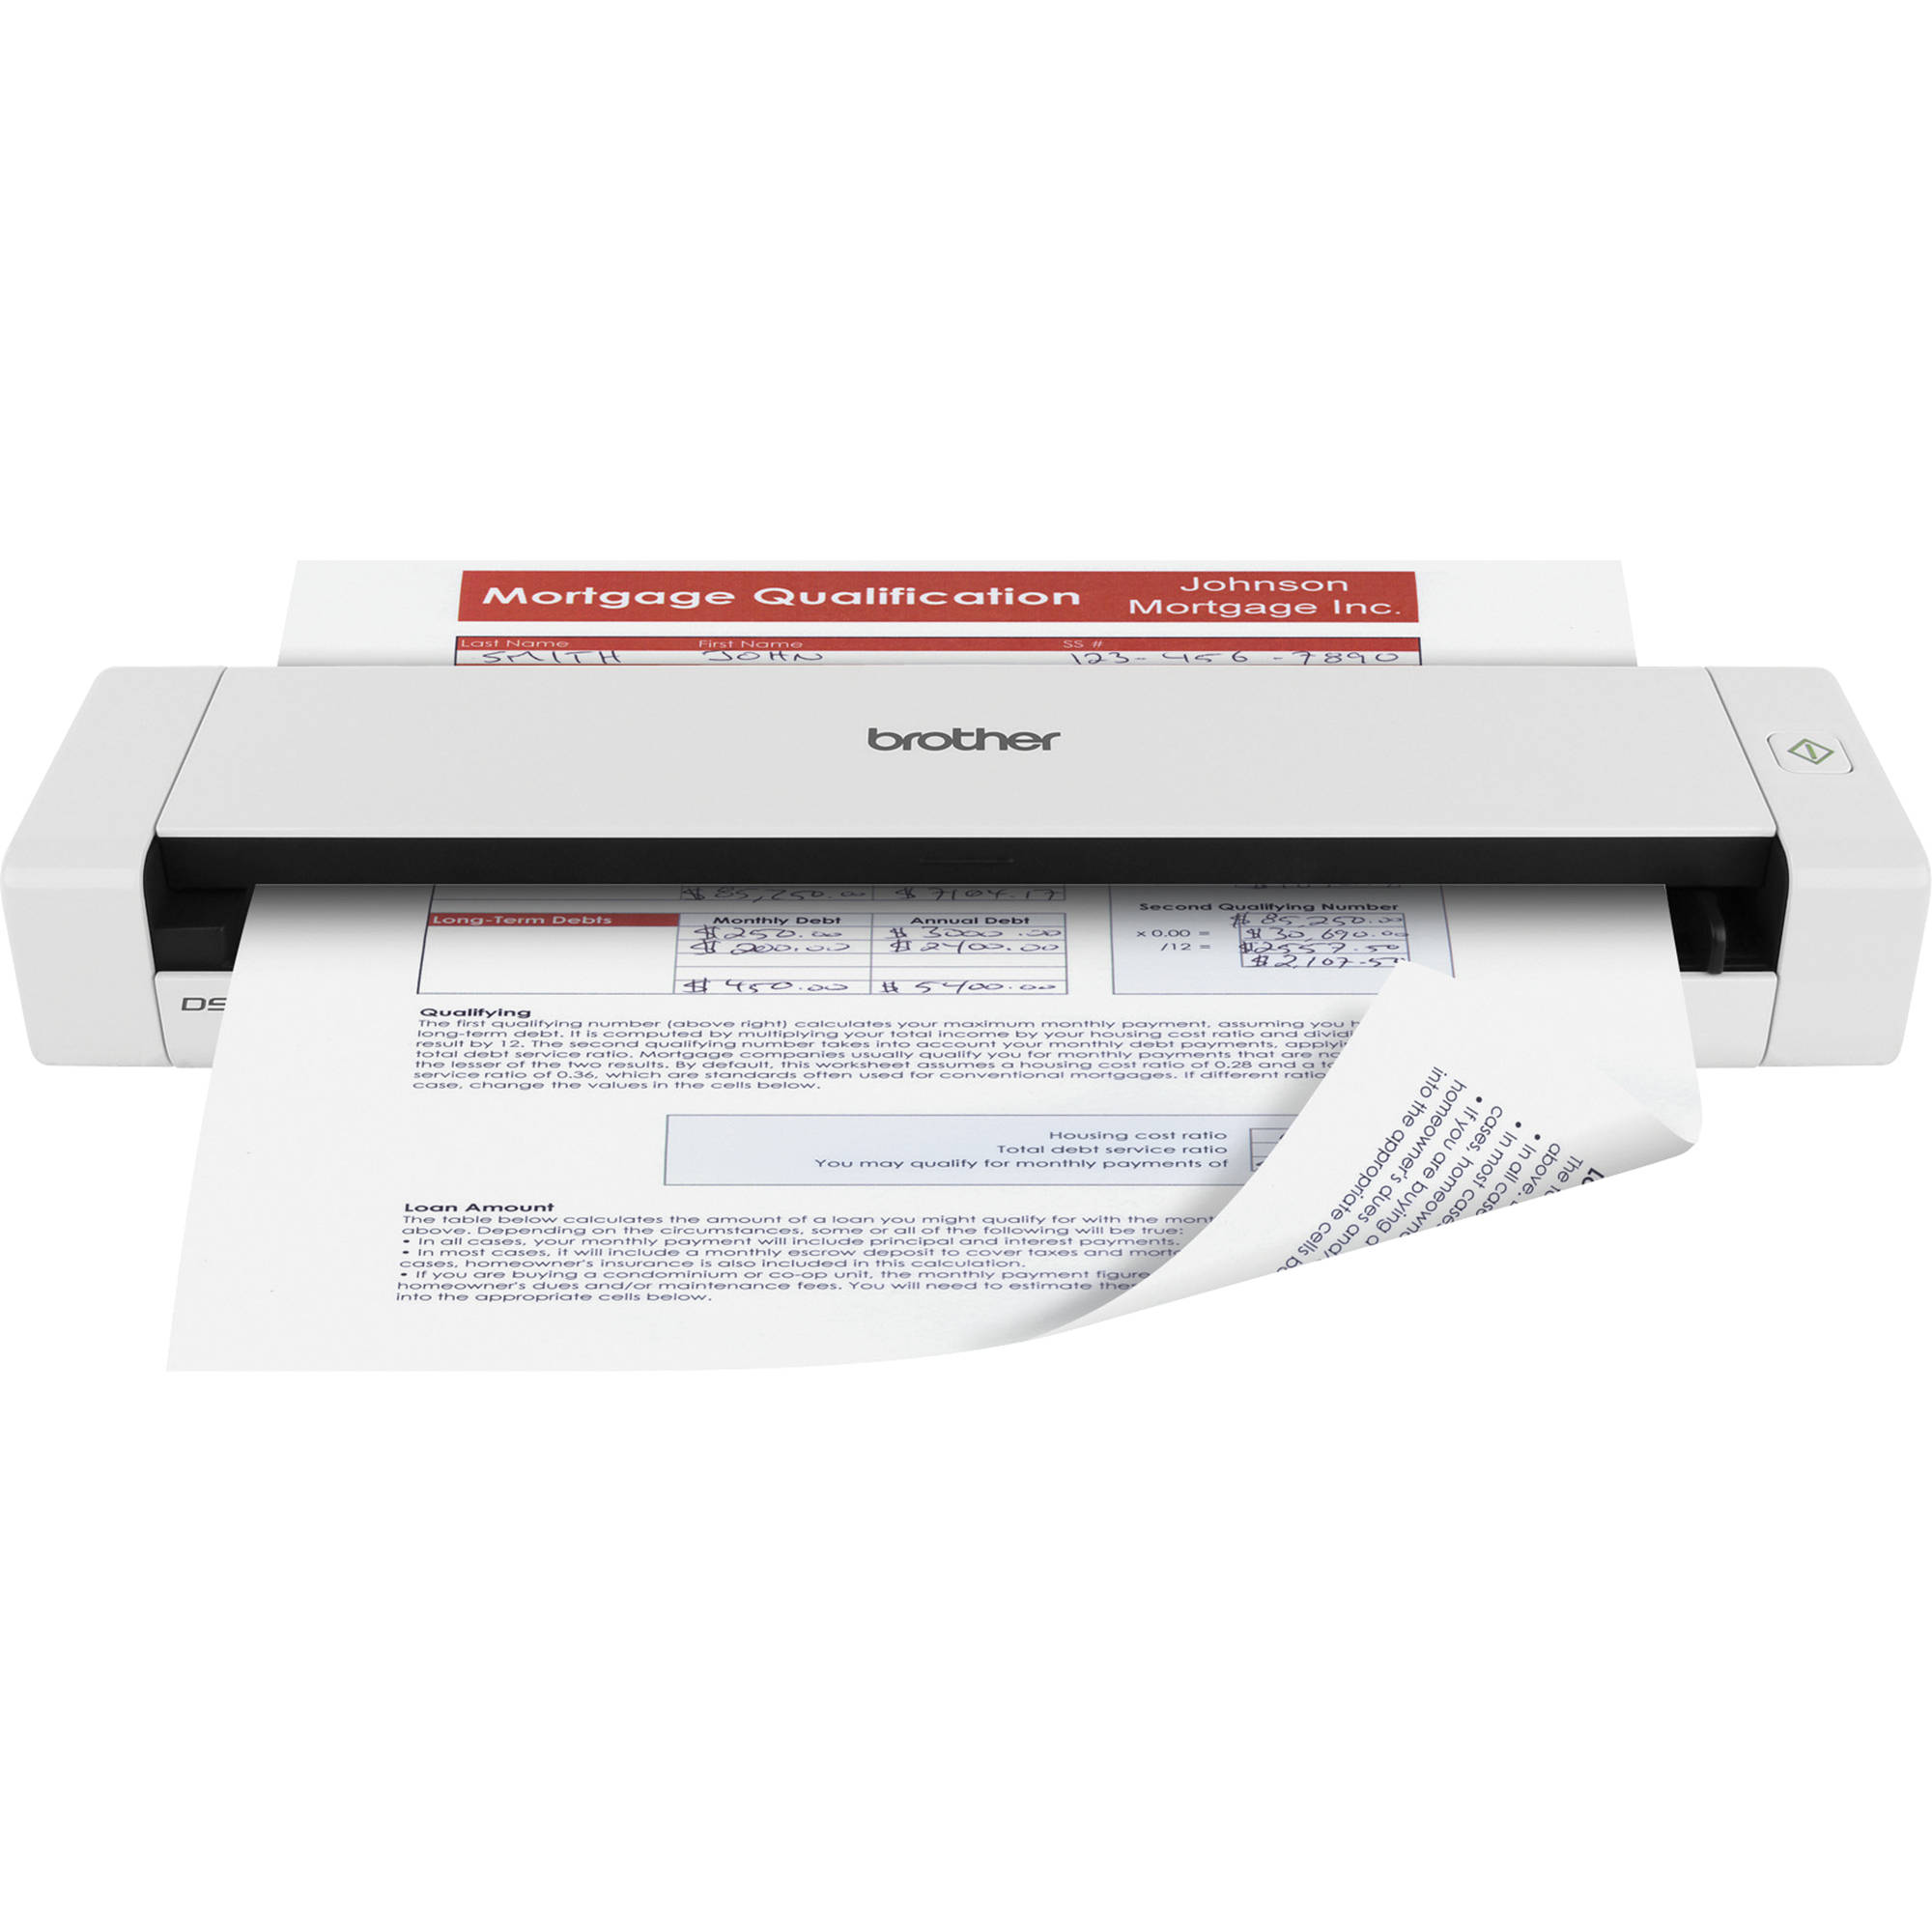 brother dsmobile 720d mobile duplex document scanner ds 720d b h